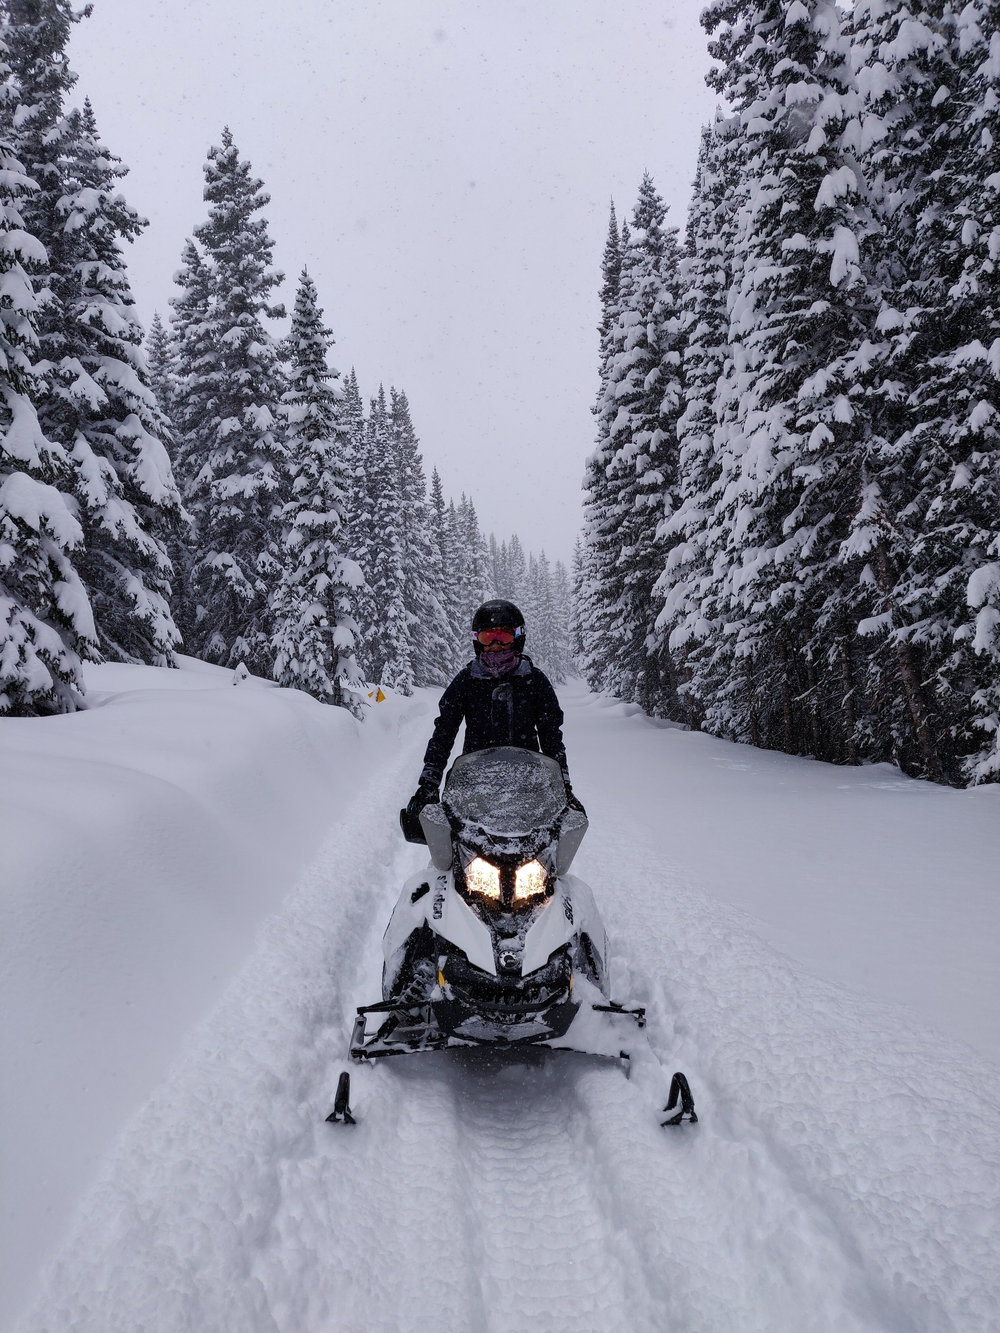 Grand Adventures Snowmobile Tour - Winter Park, Colorado